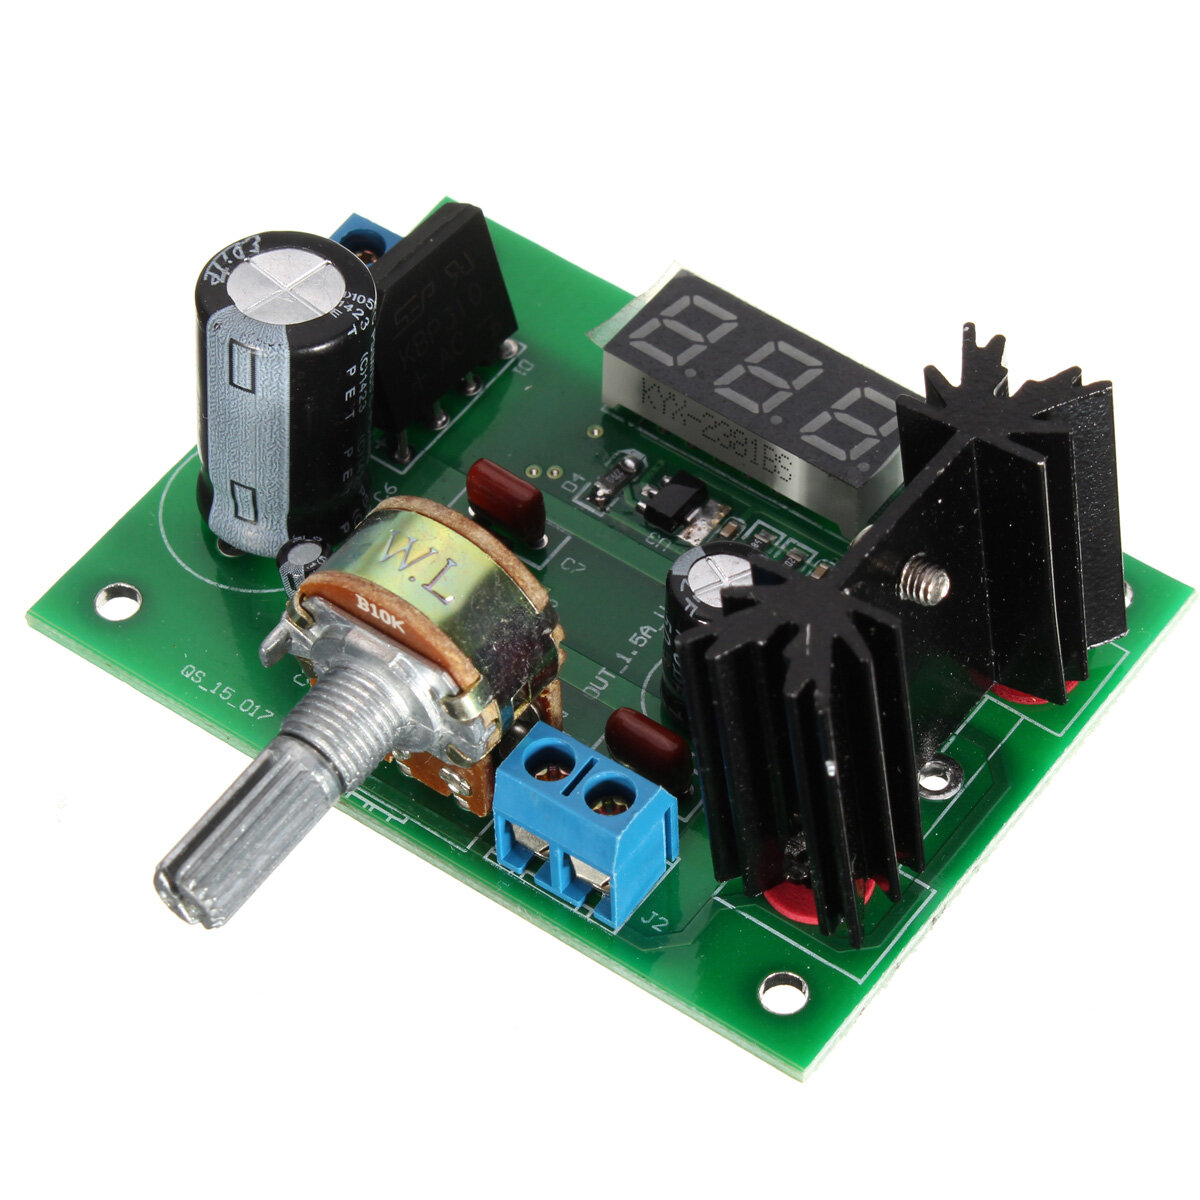 Lm317 Adjustable Voltage Regulator Step Down Power Supply Module Led Usb Battery Replacement By 600x600